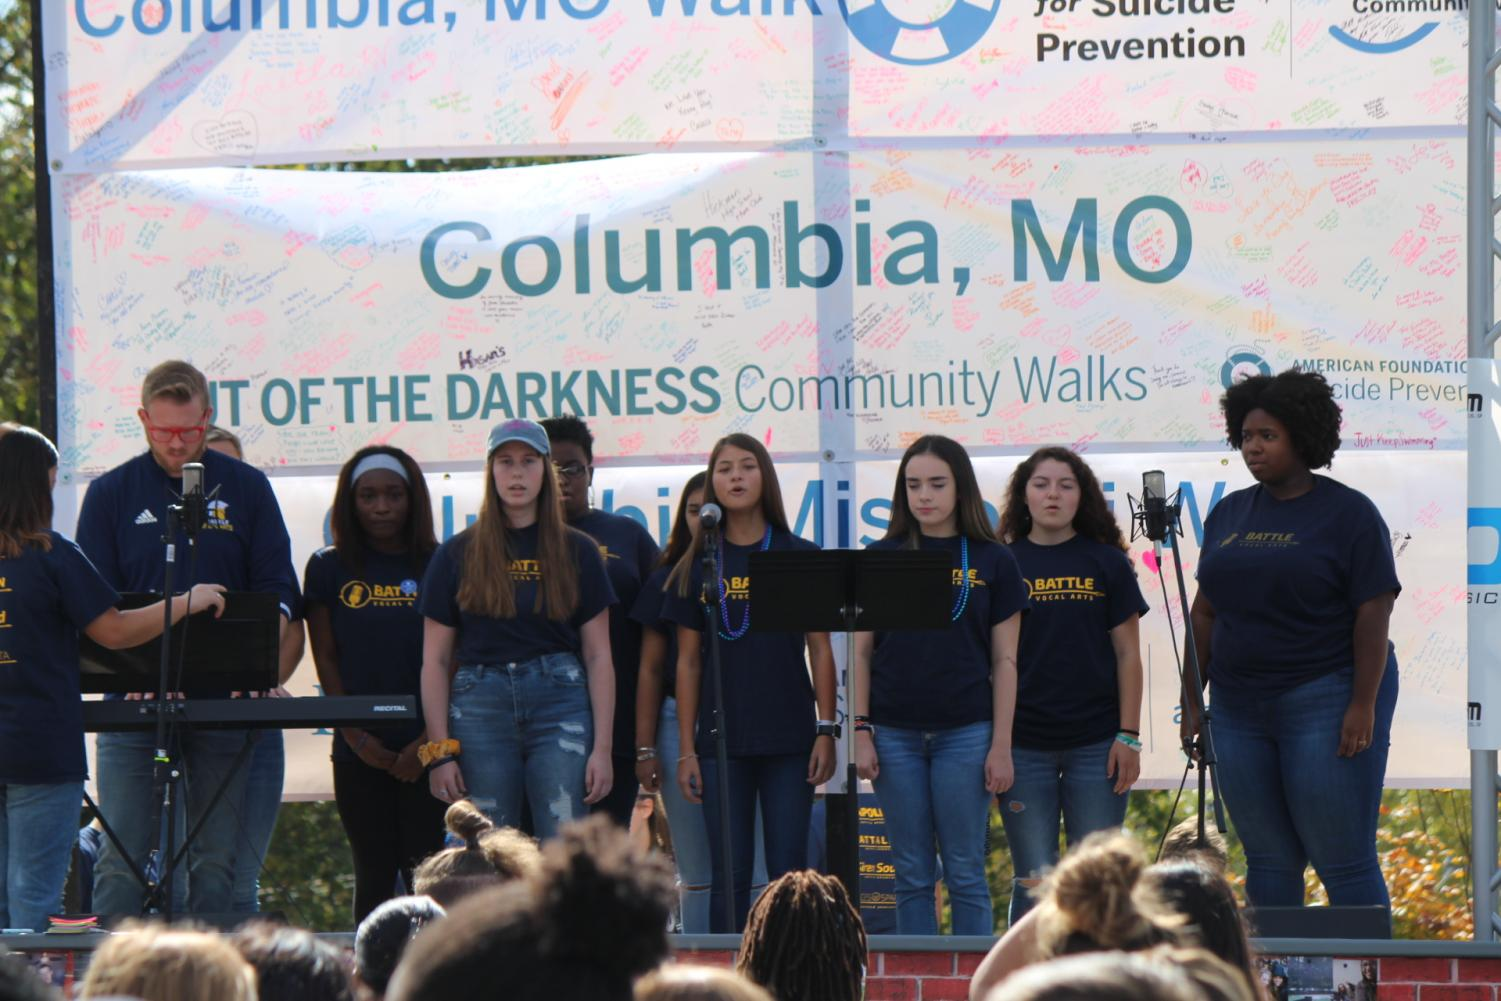 Battle's vocal arts performed at the walk